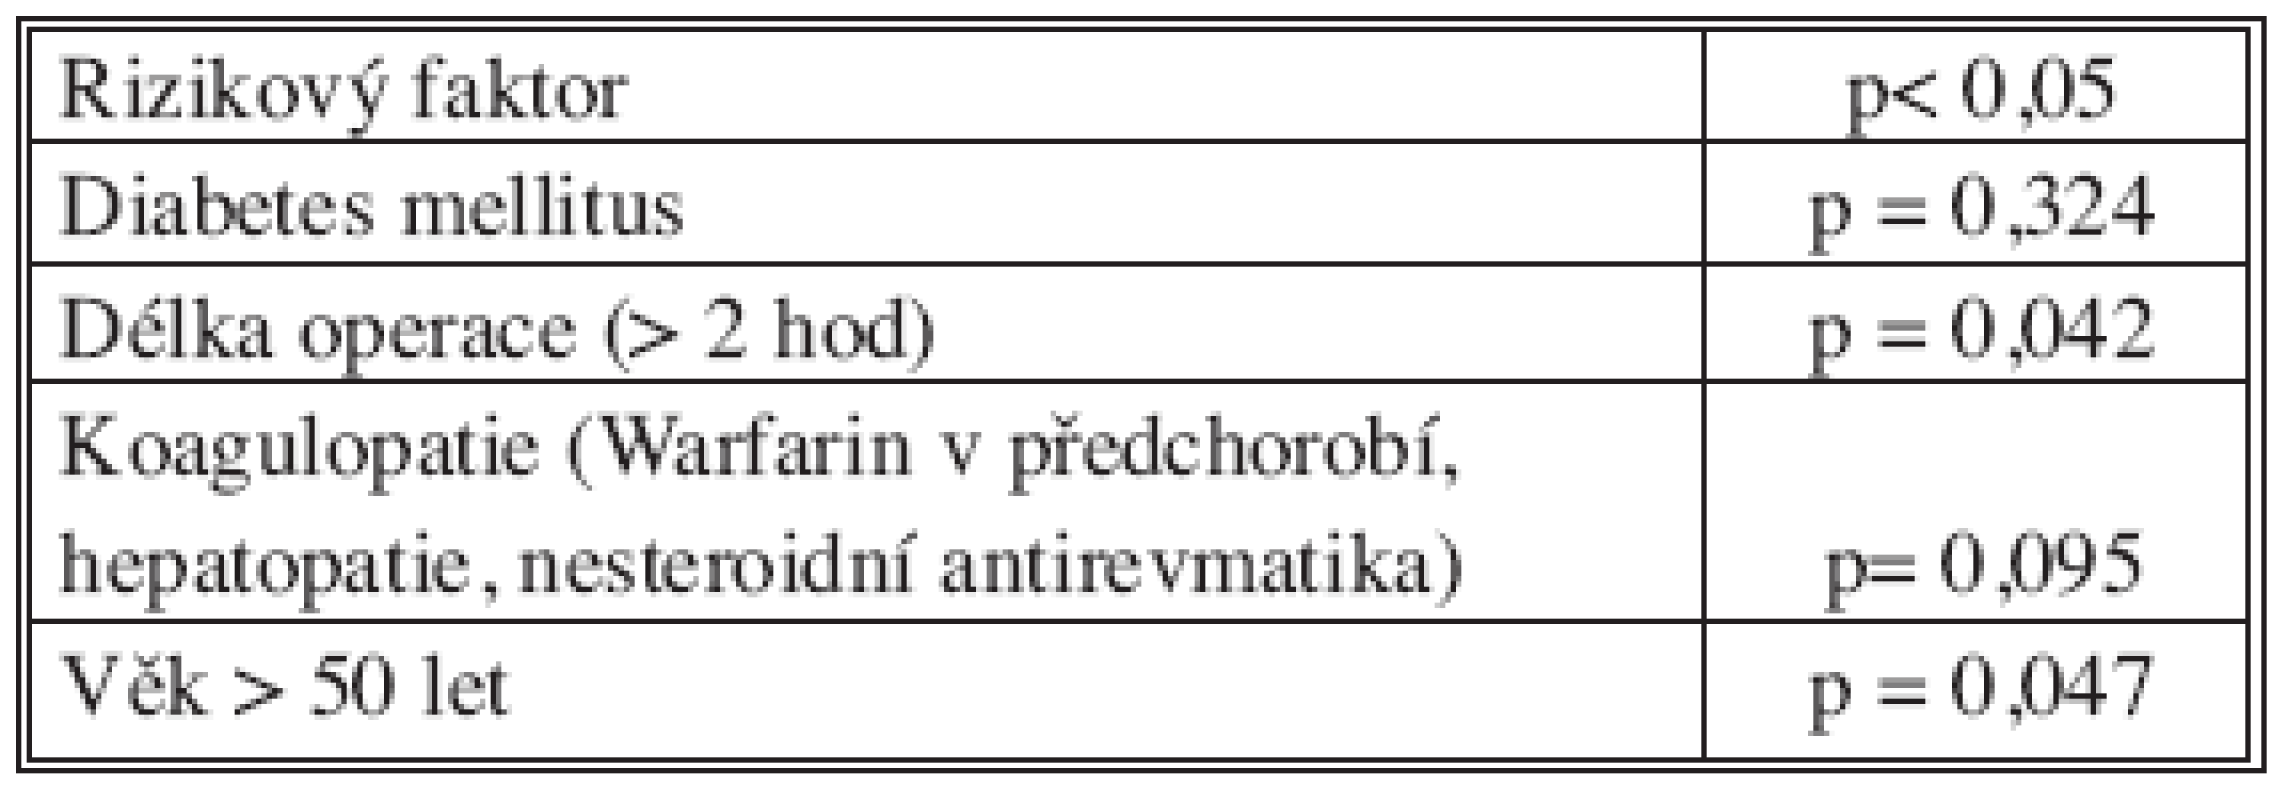 Rizikové faktory infekce chirurgického místa Tab. 4. Surgical site infections risk factors